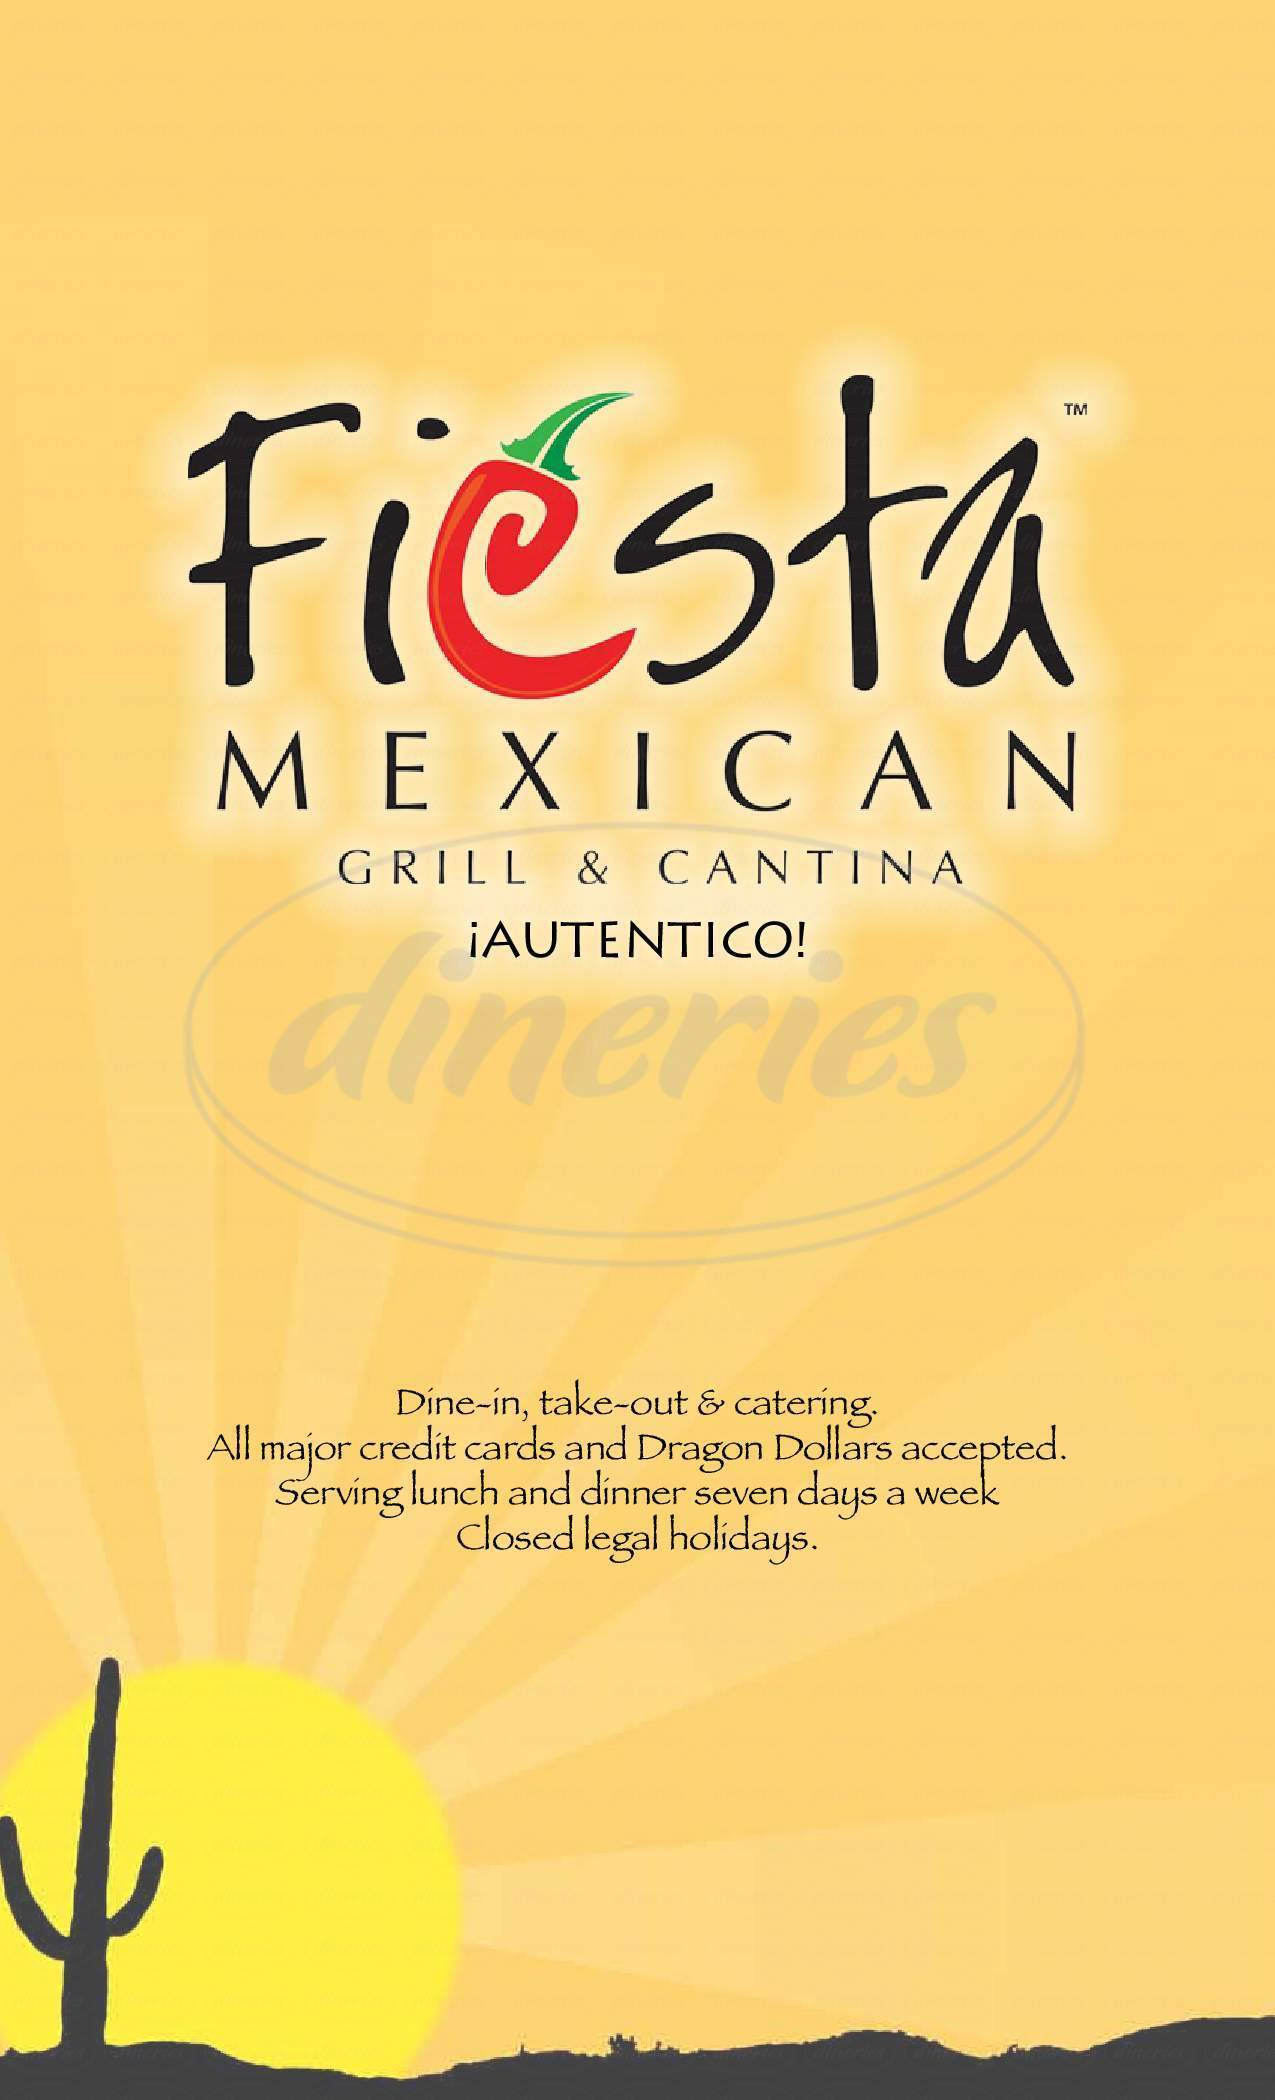 menu for Fiesta Mexican Restaurant